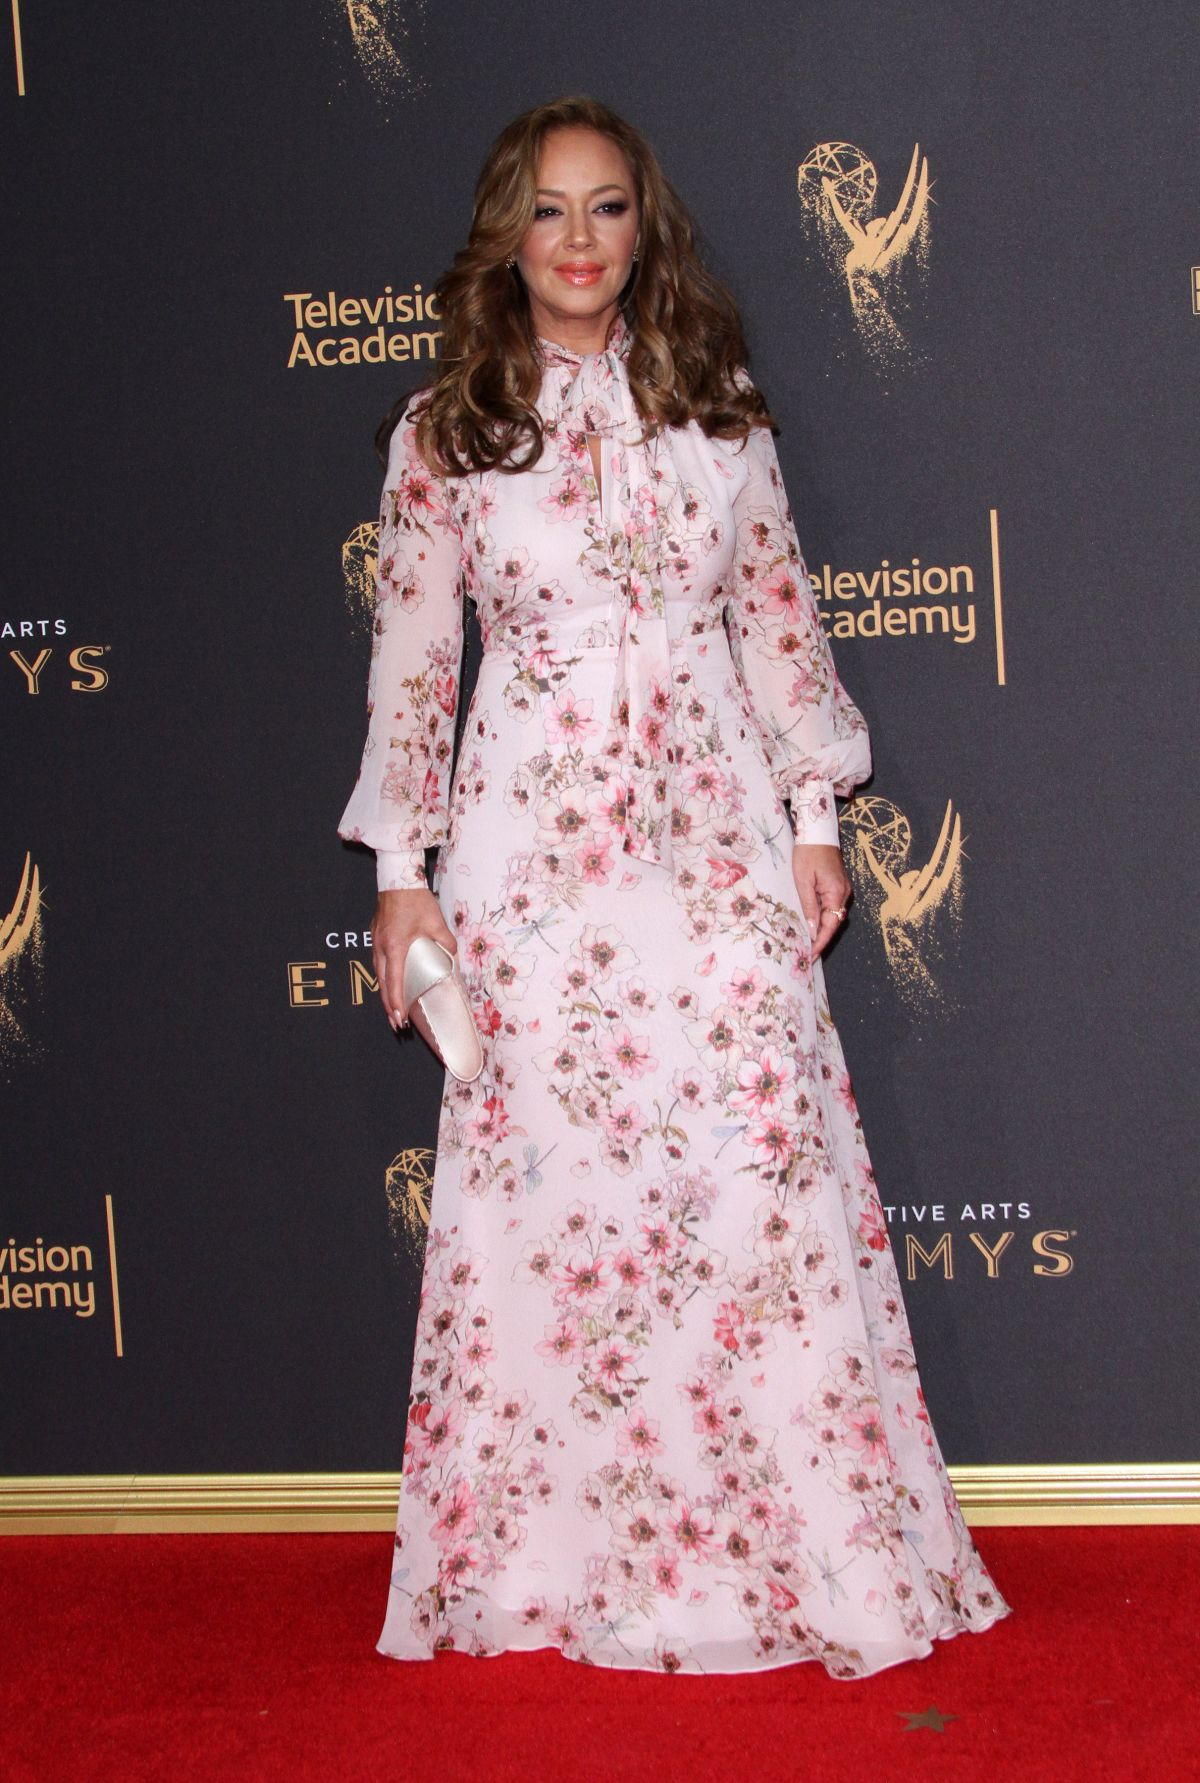 LEAH REMINI at 2017 Creative Arts Emmy Awards in Los Angeles 09/09/2017